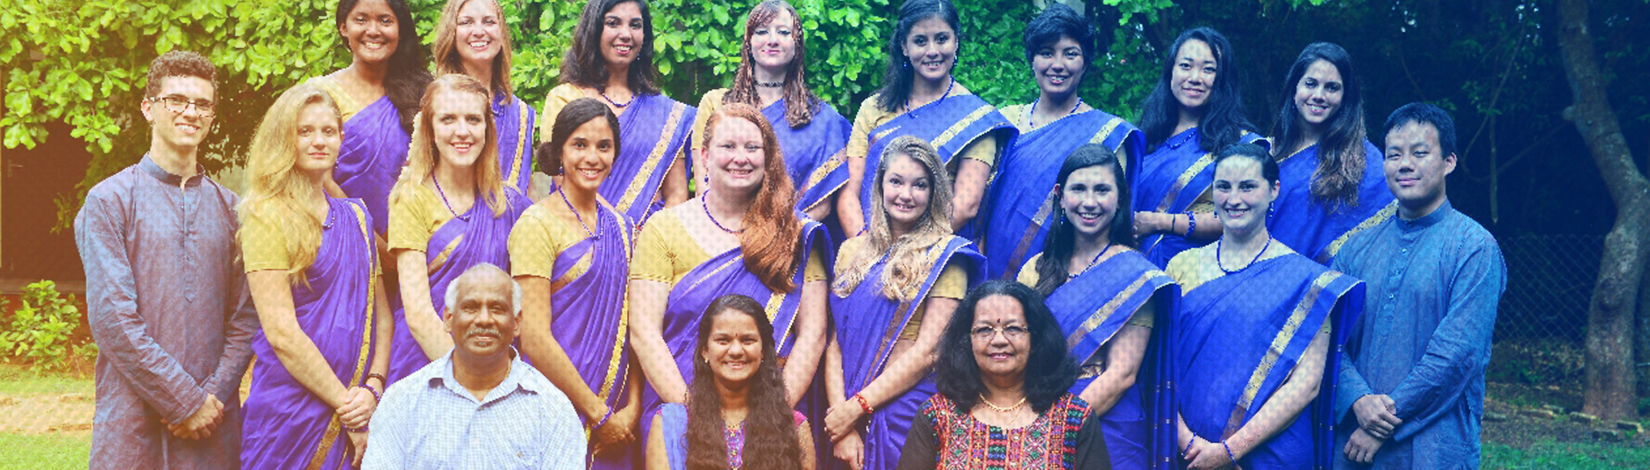 Group of CALS students studying abroad in India, posing in matching purple traditional clothing with some local residents.